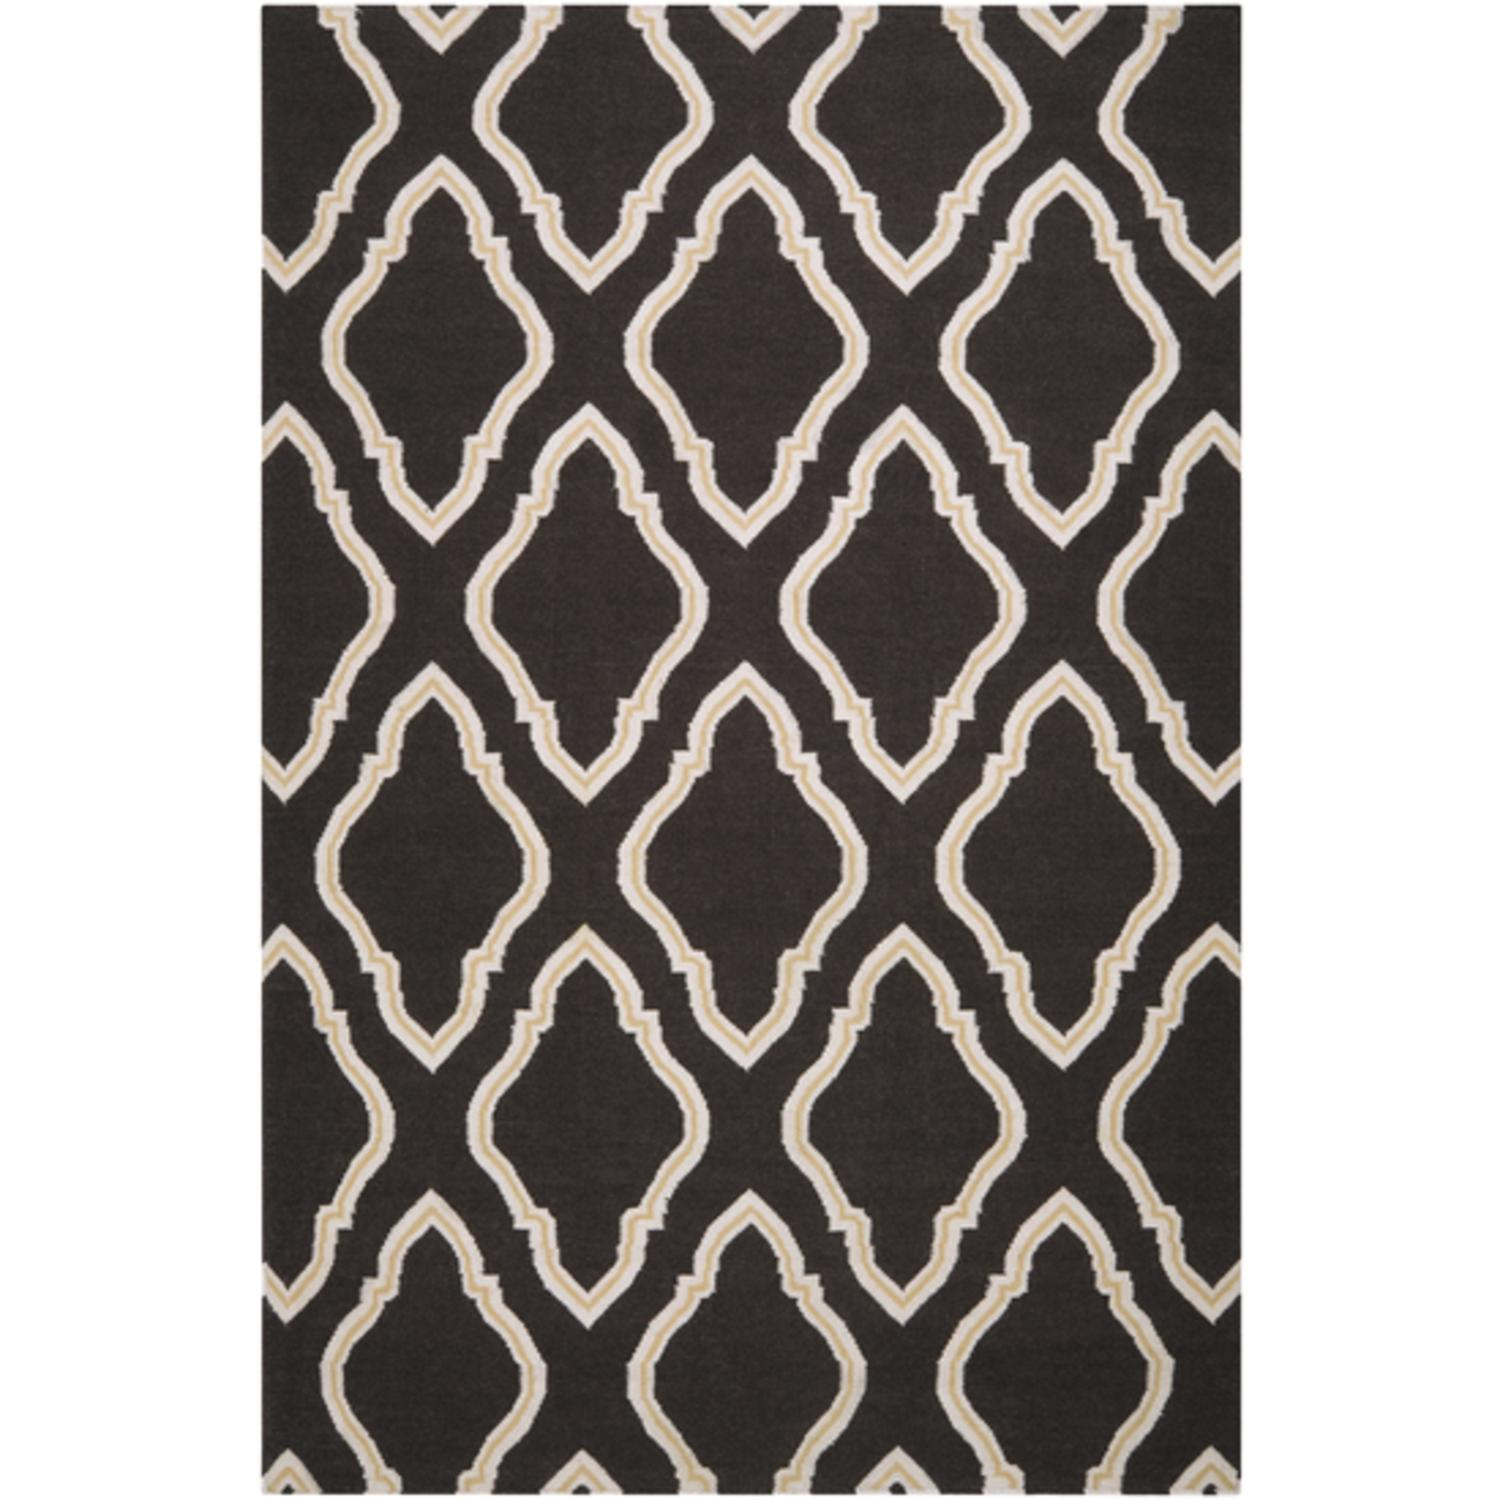 5' x 8' Diamond Scroll Dark Espresso Brown and White Wool Area Throw Rug